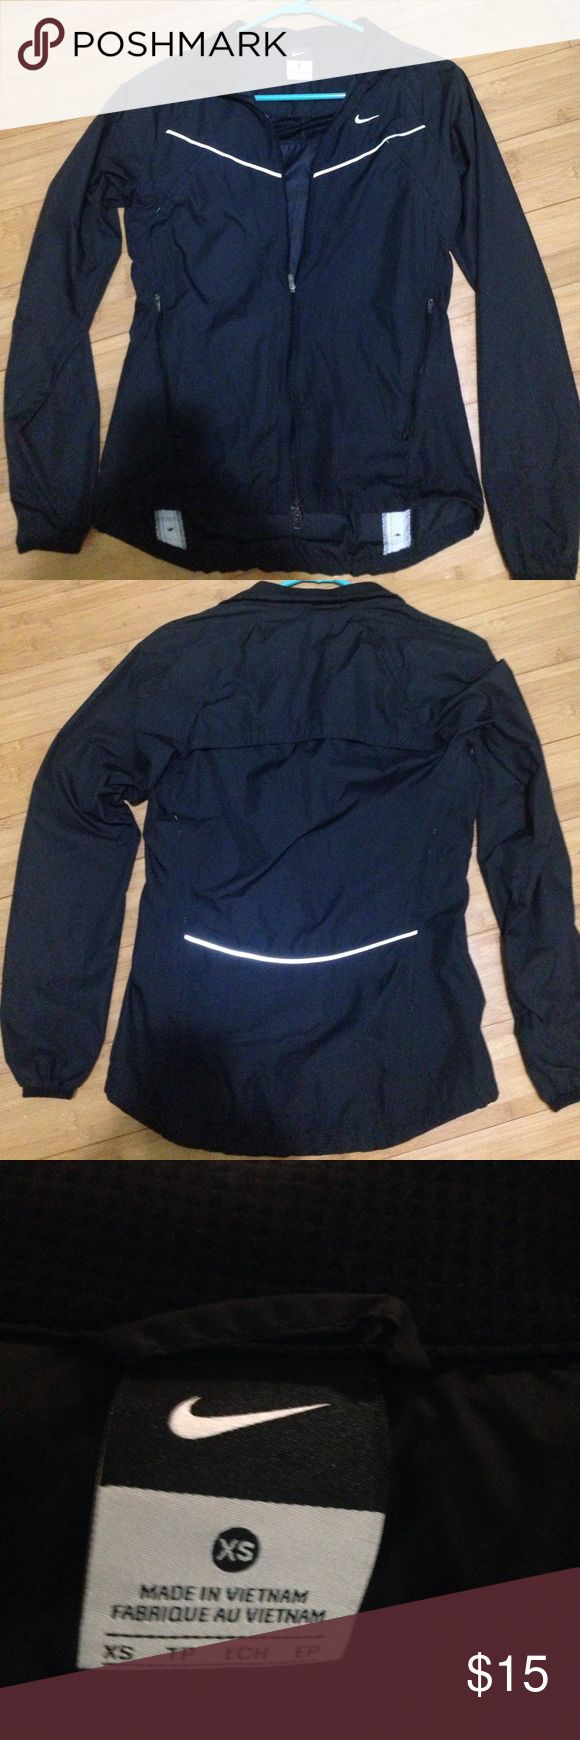 "Ladies Nike Running Jacket Nike Black with 3M reflective trim running jacket. Super light weight, vented in back, pit area, and a few more places. Measures 17"" from pit to pit when laid flat. 24"" length in front and 26"" in back. Sleeves measure 21"" from UNDER armpit to end of sleeve. All zippers work great including the double zipper. Trimmed with 3M for safety when running. SIZE IS XS Nike Jackets & Coats"